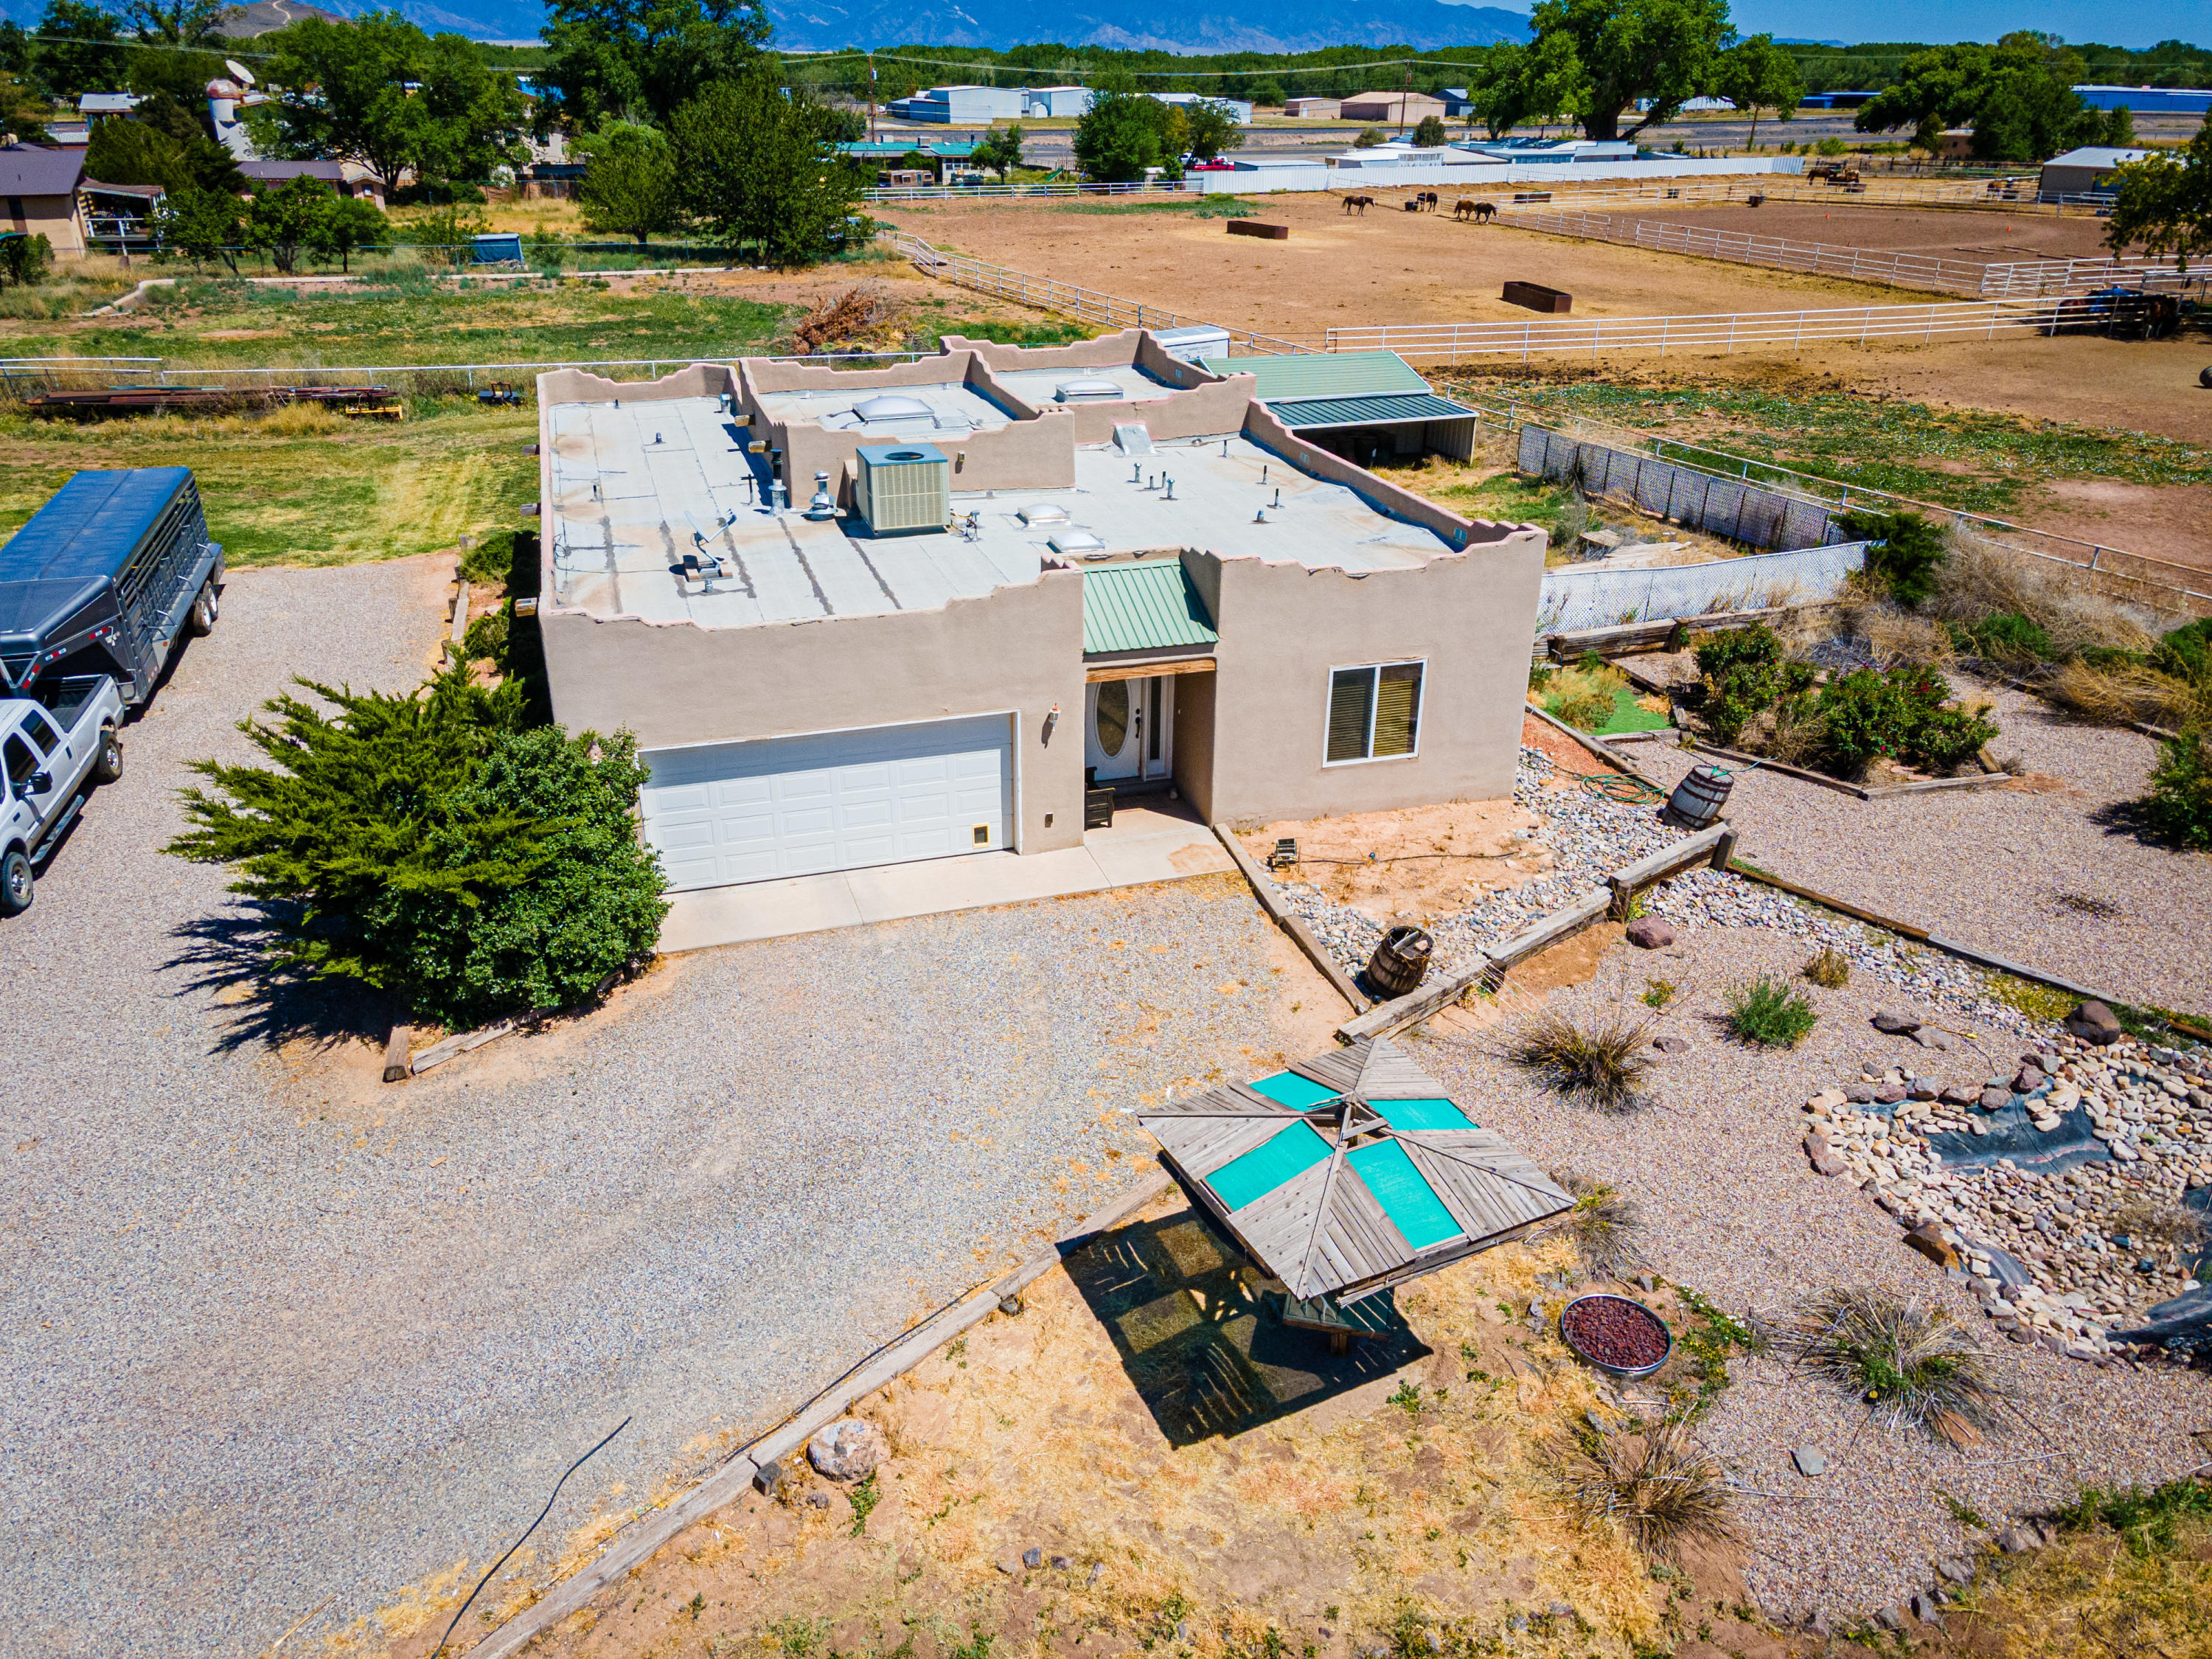 Beautiful custom home on 2 acres located in a convenient Los Lunas location! This property has so much to offer-- it sits on a coroner lot, has great use of outdoor space with a detached shop that includes 220 electric, barn, horse stalls and plenty of space for grazing livestock. Inside the home you will find a large kitchen with a breakfast bar, tons of cabinets, spacious living room with skylights and a sunroom off the back. Southwest accents throughout the home, large bedrooms, refrigerated air, radiant and central heat. Don't miss out, call to schedule your showing today!